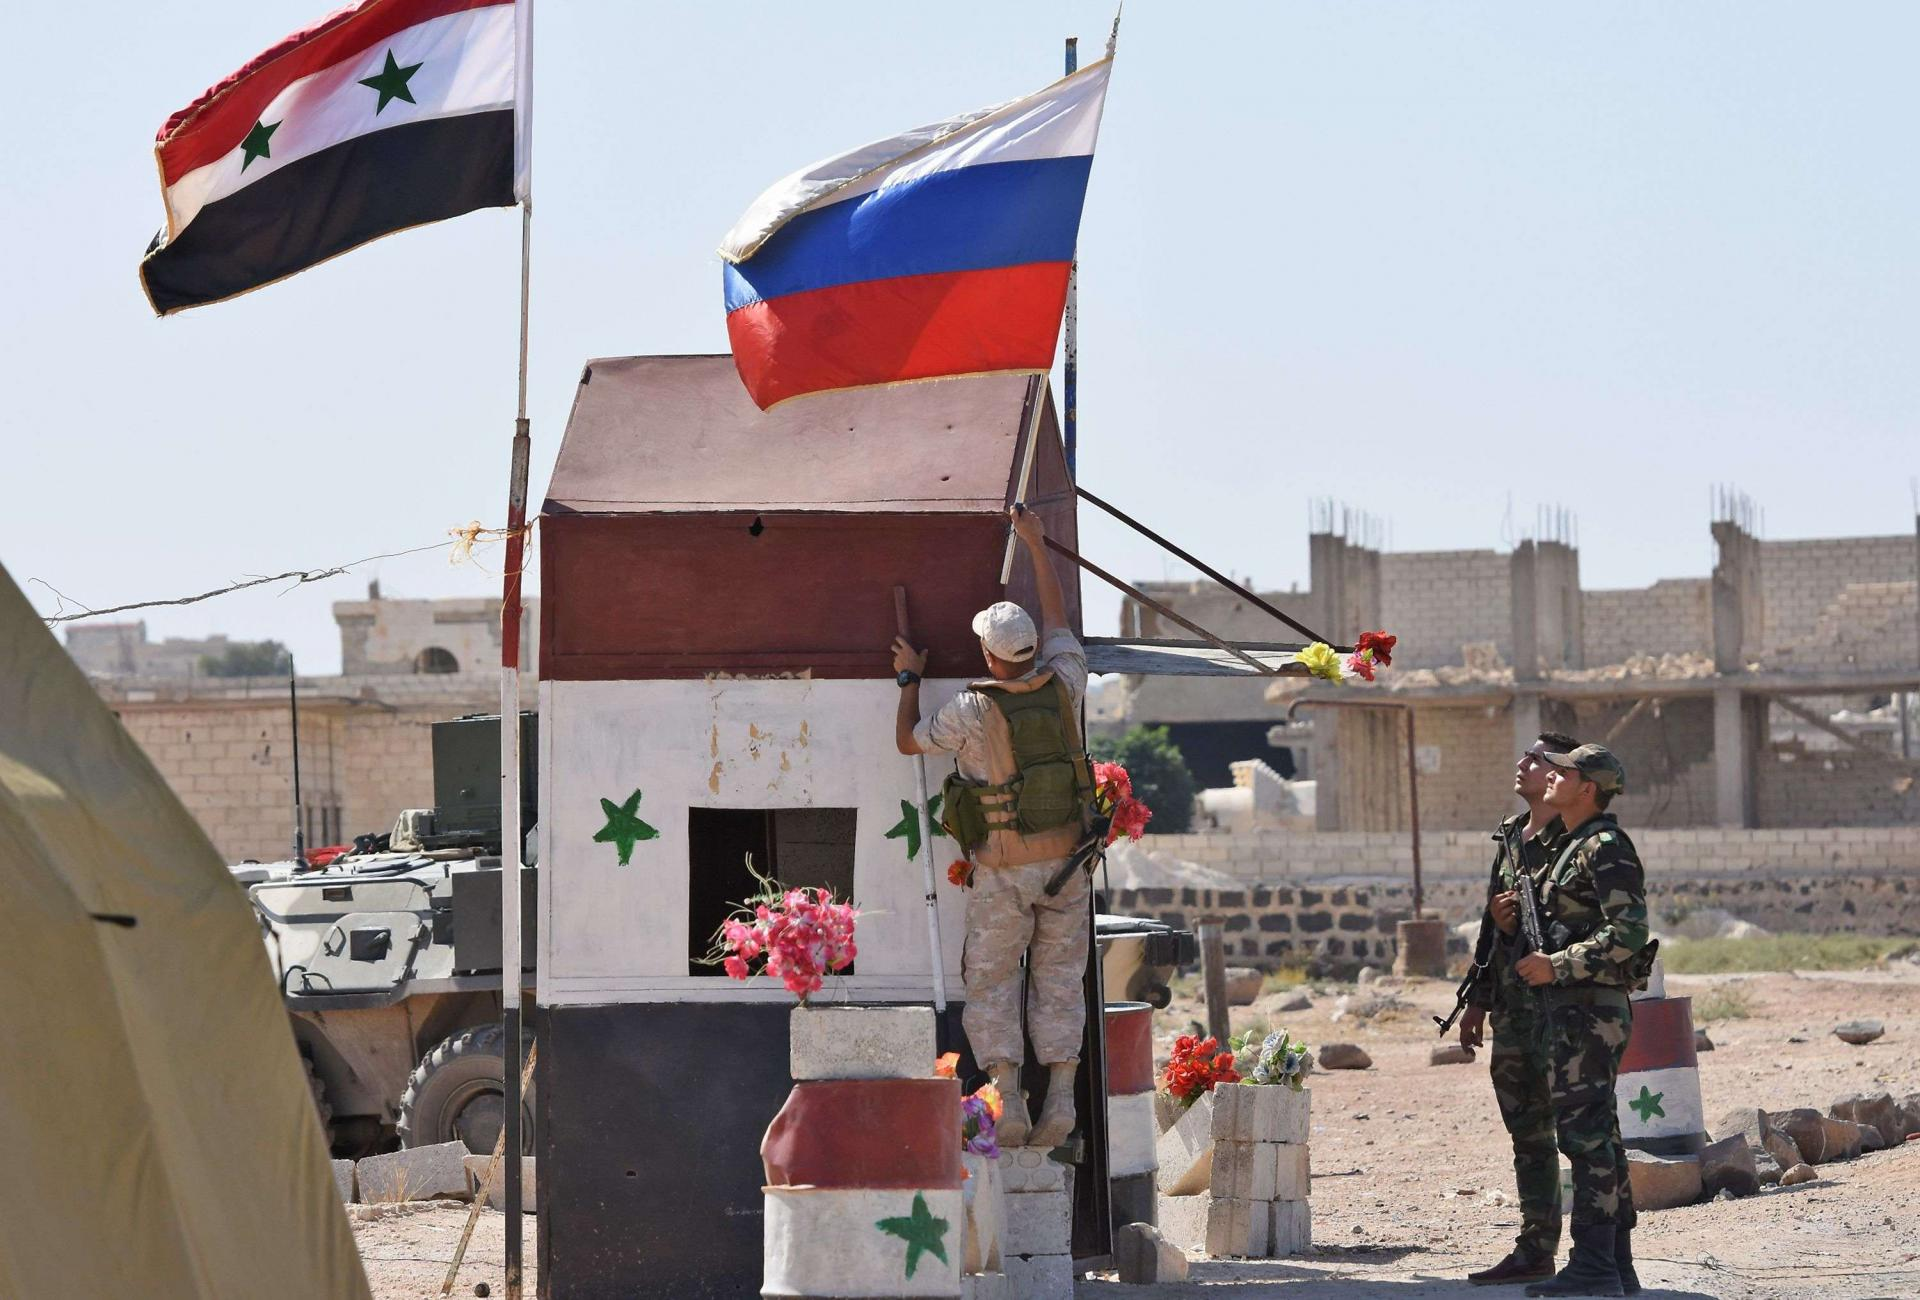 Russian soldiers place the national flag at the Abu Duhur crossing on the eastern edge of Idlib province on September 25, 2018, as Syrian families cross from rebel-held areas to regime-held areas.